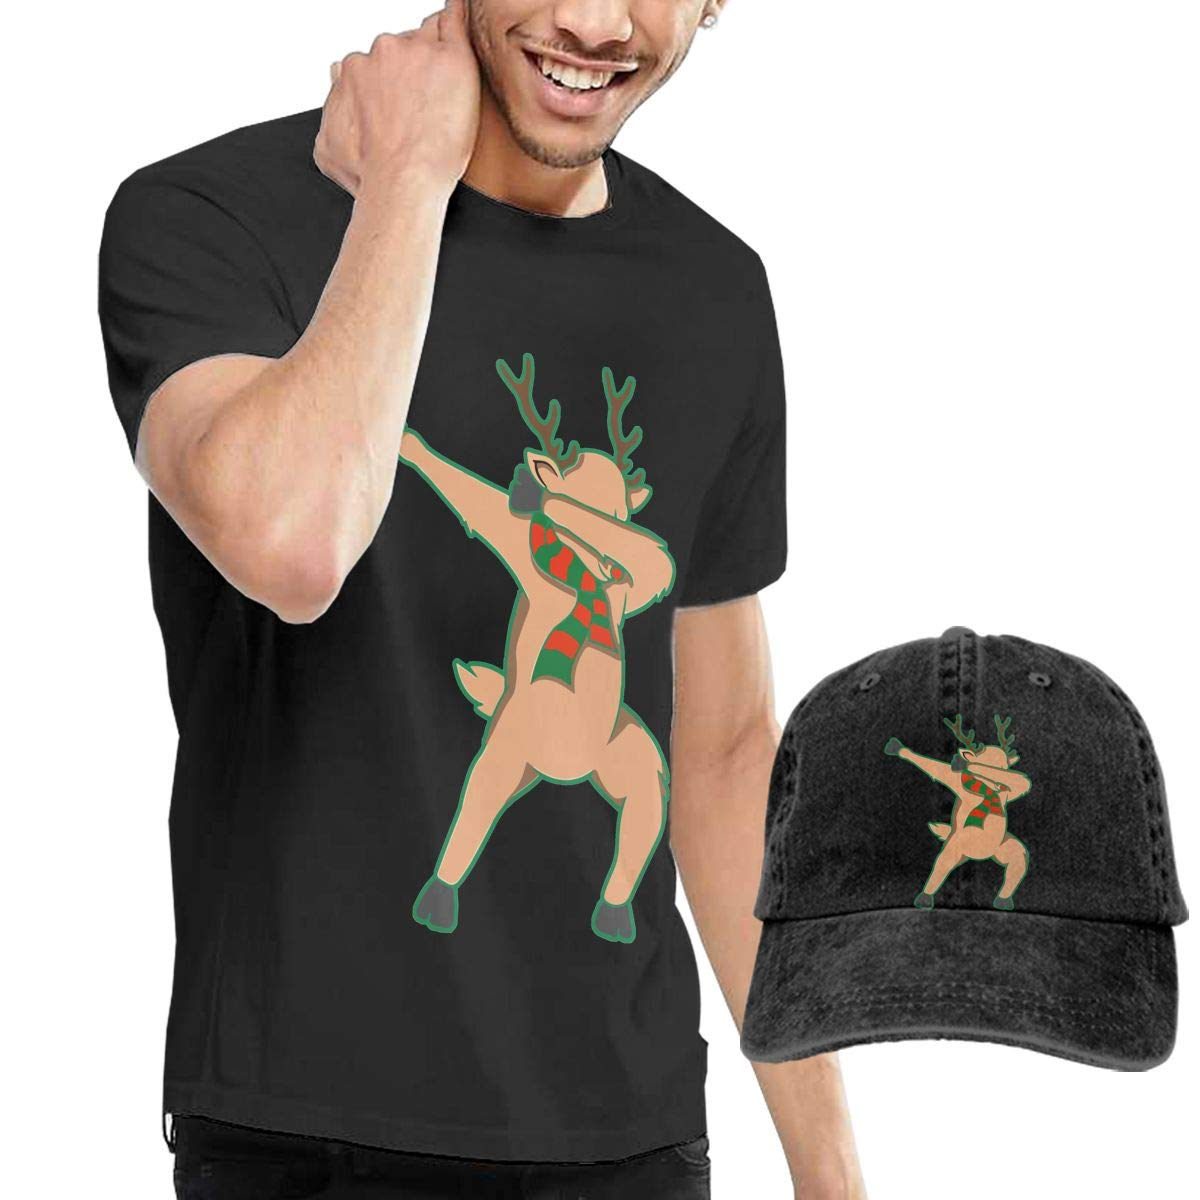 QqZXD Dabbing Reindeer Dab Dance Rudolph Christmas Fashion Mens T-Shirt and Hats Youth /& Adult T-Shirts